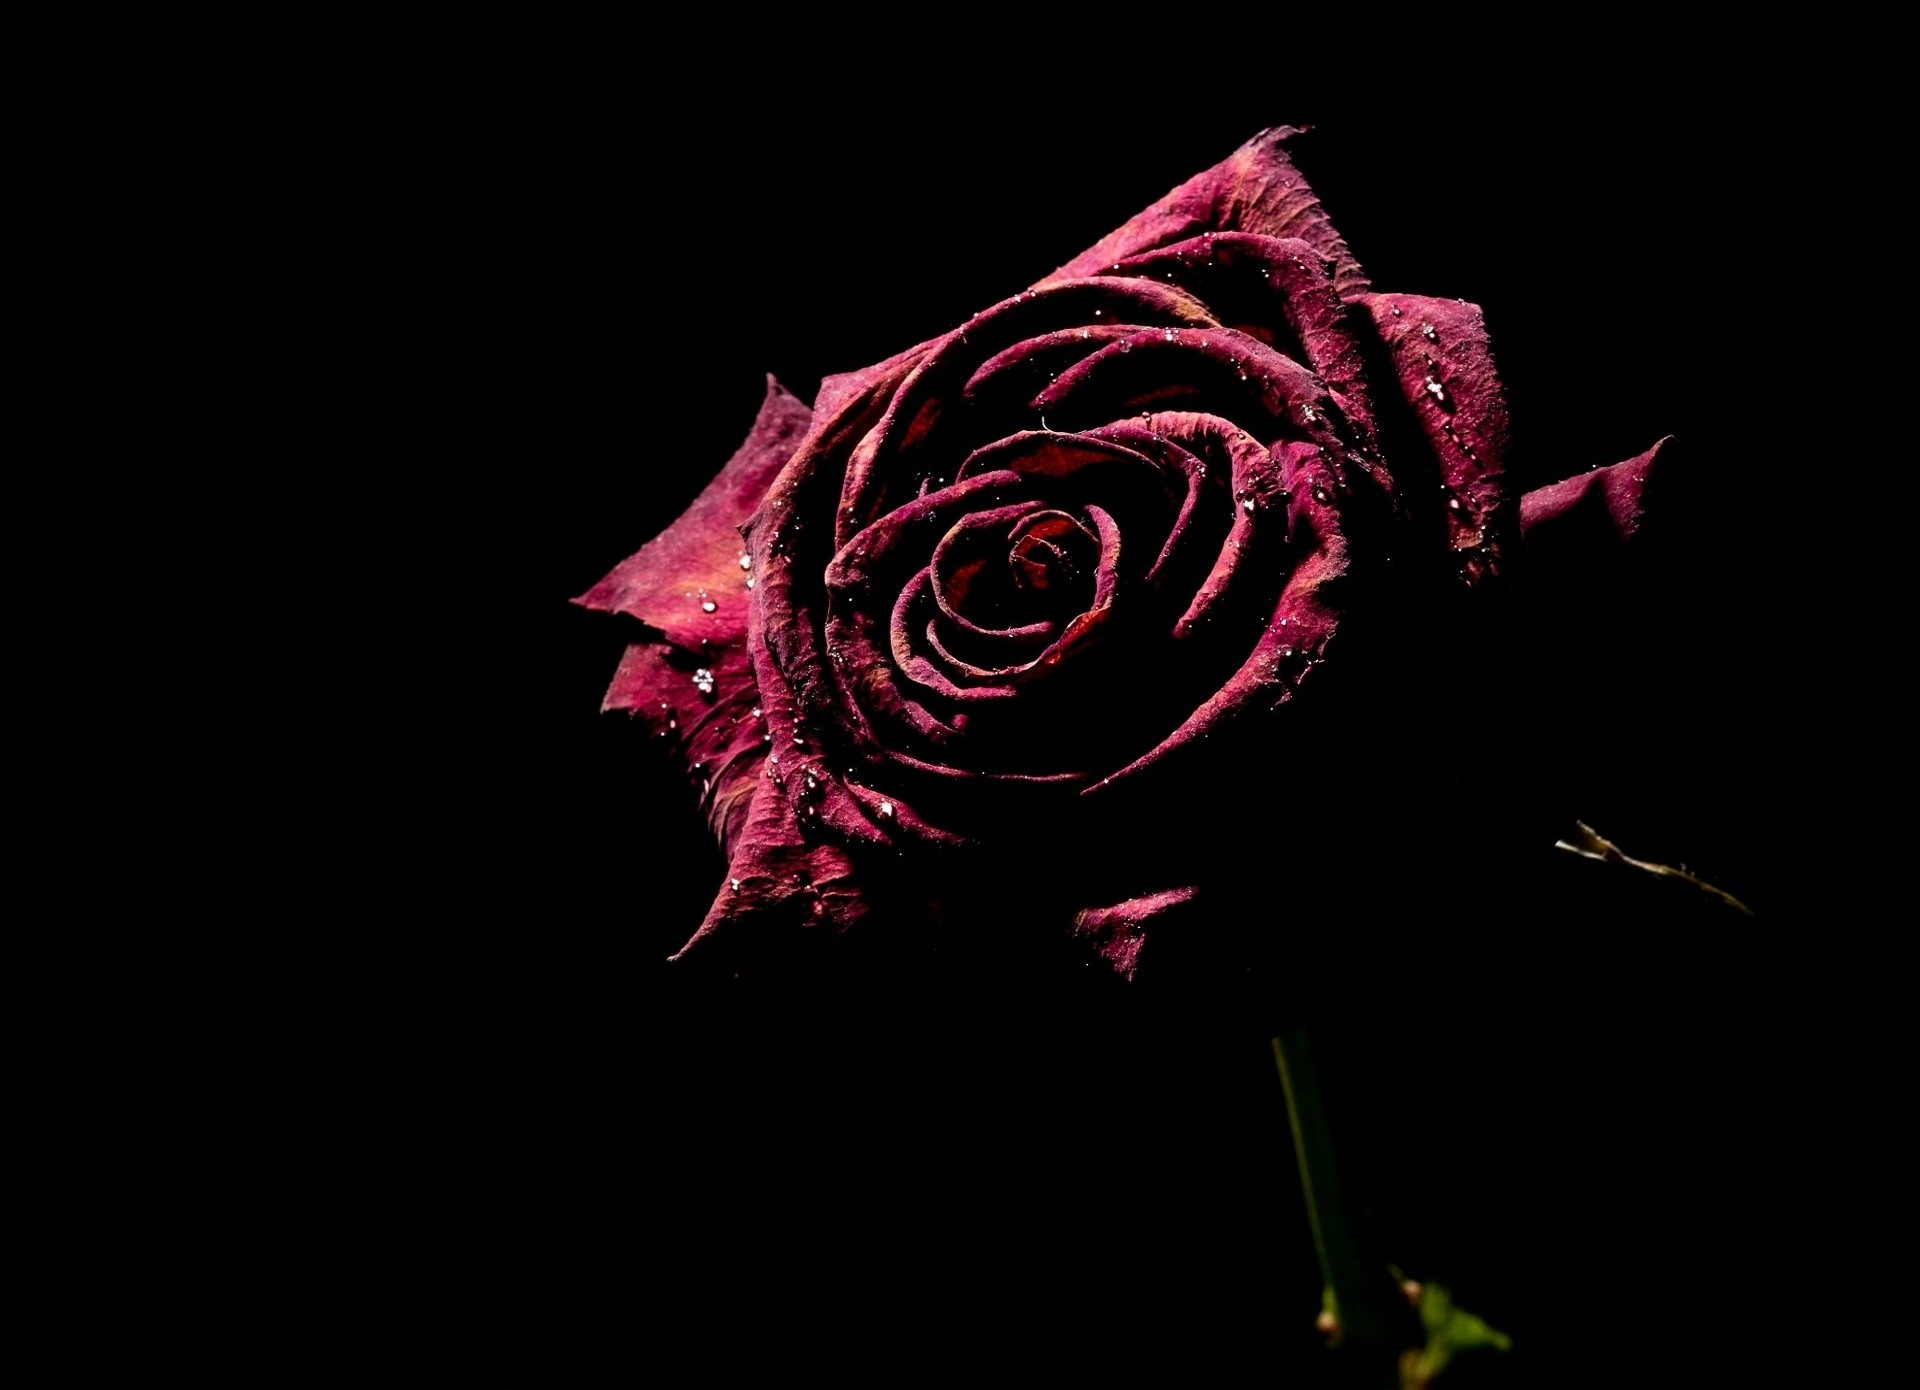 Red Rose Black Background 41 Pictures